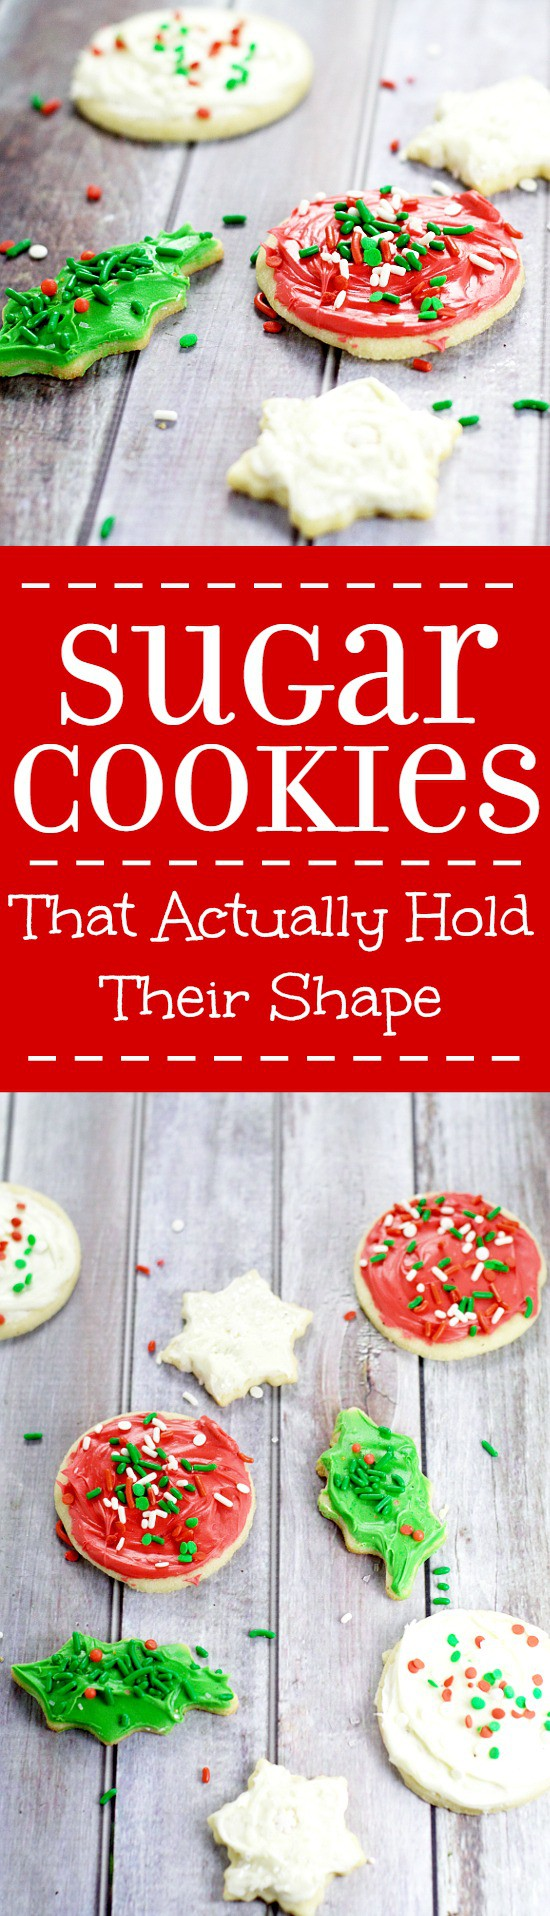 Sugar Cookies that Hold Their Shape. My grandma's recipe for the BEST soft, chewy sugar cookies that hold their shape. We use this recipe for perfect sugar cookies for Christmas, birthdays, and every time there's a sugar cookie craving.